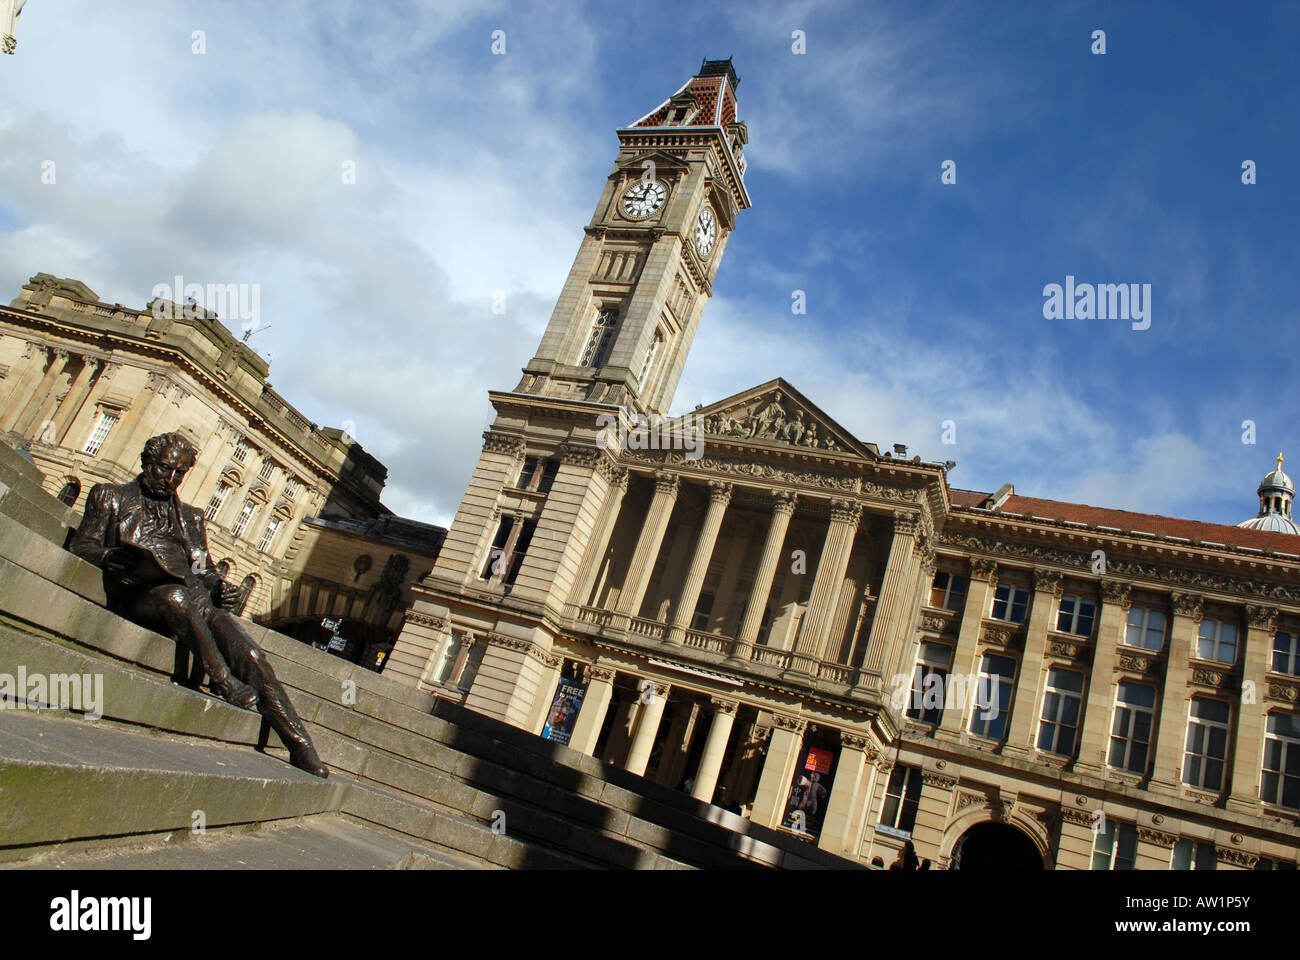 Chamberlain Square in Birmingham, West Midlands, England. - Stock Image